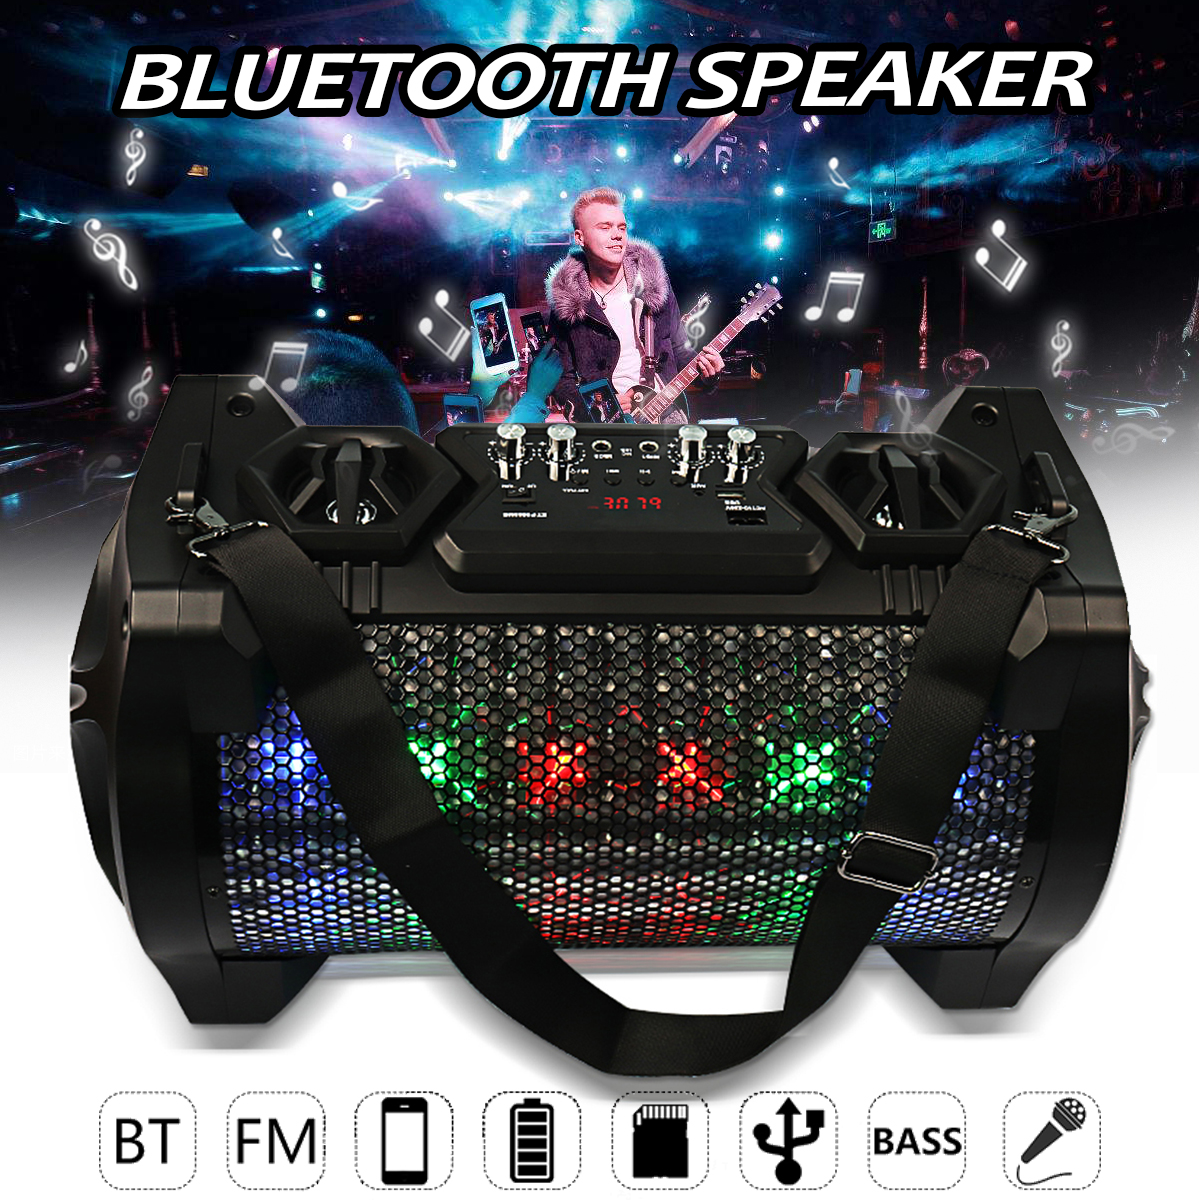 Portable Wireless Bluetooth Speaker Bass Stereo FM Radio AUX/USB/TF Card Loudspeaker Subwoofer Handfree For Outdoor Music Player exrizu ms 136bt portable wireless bluetooth speakers 15w outdoor led light speaker subwoofer super bass music boombox tf radio